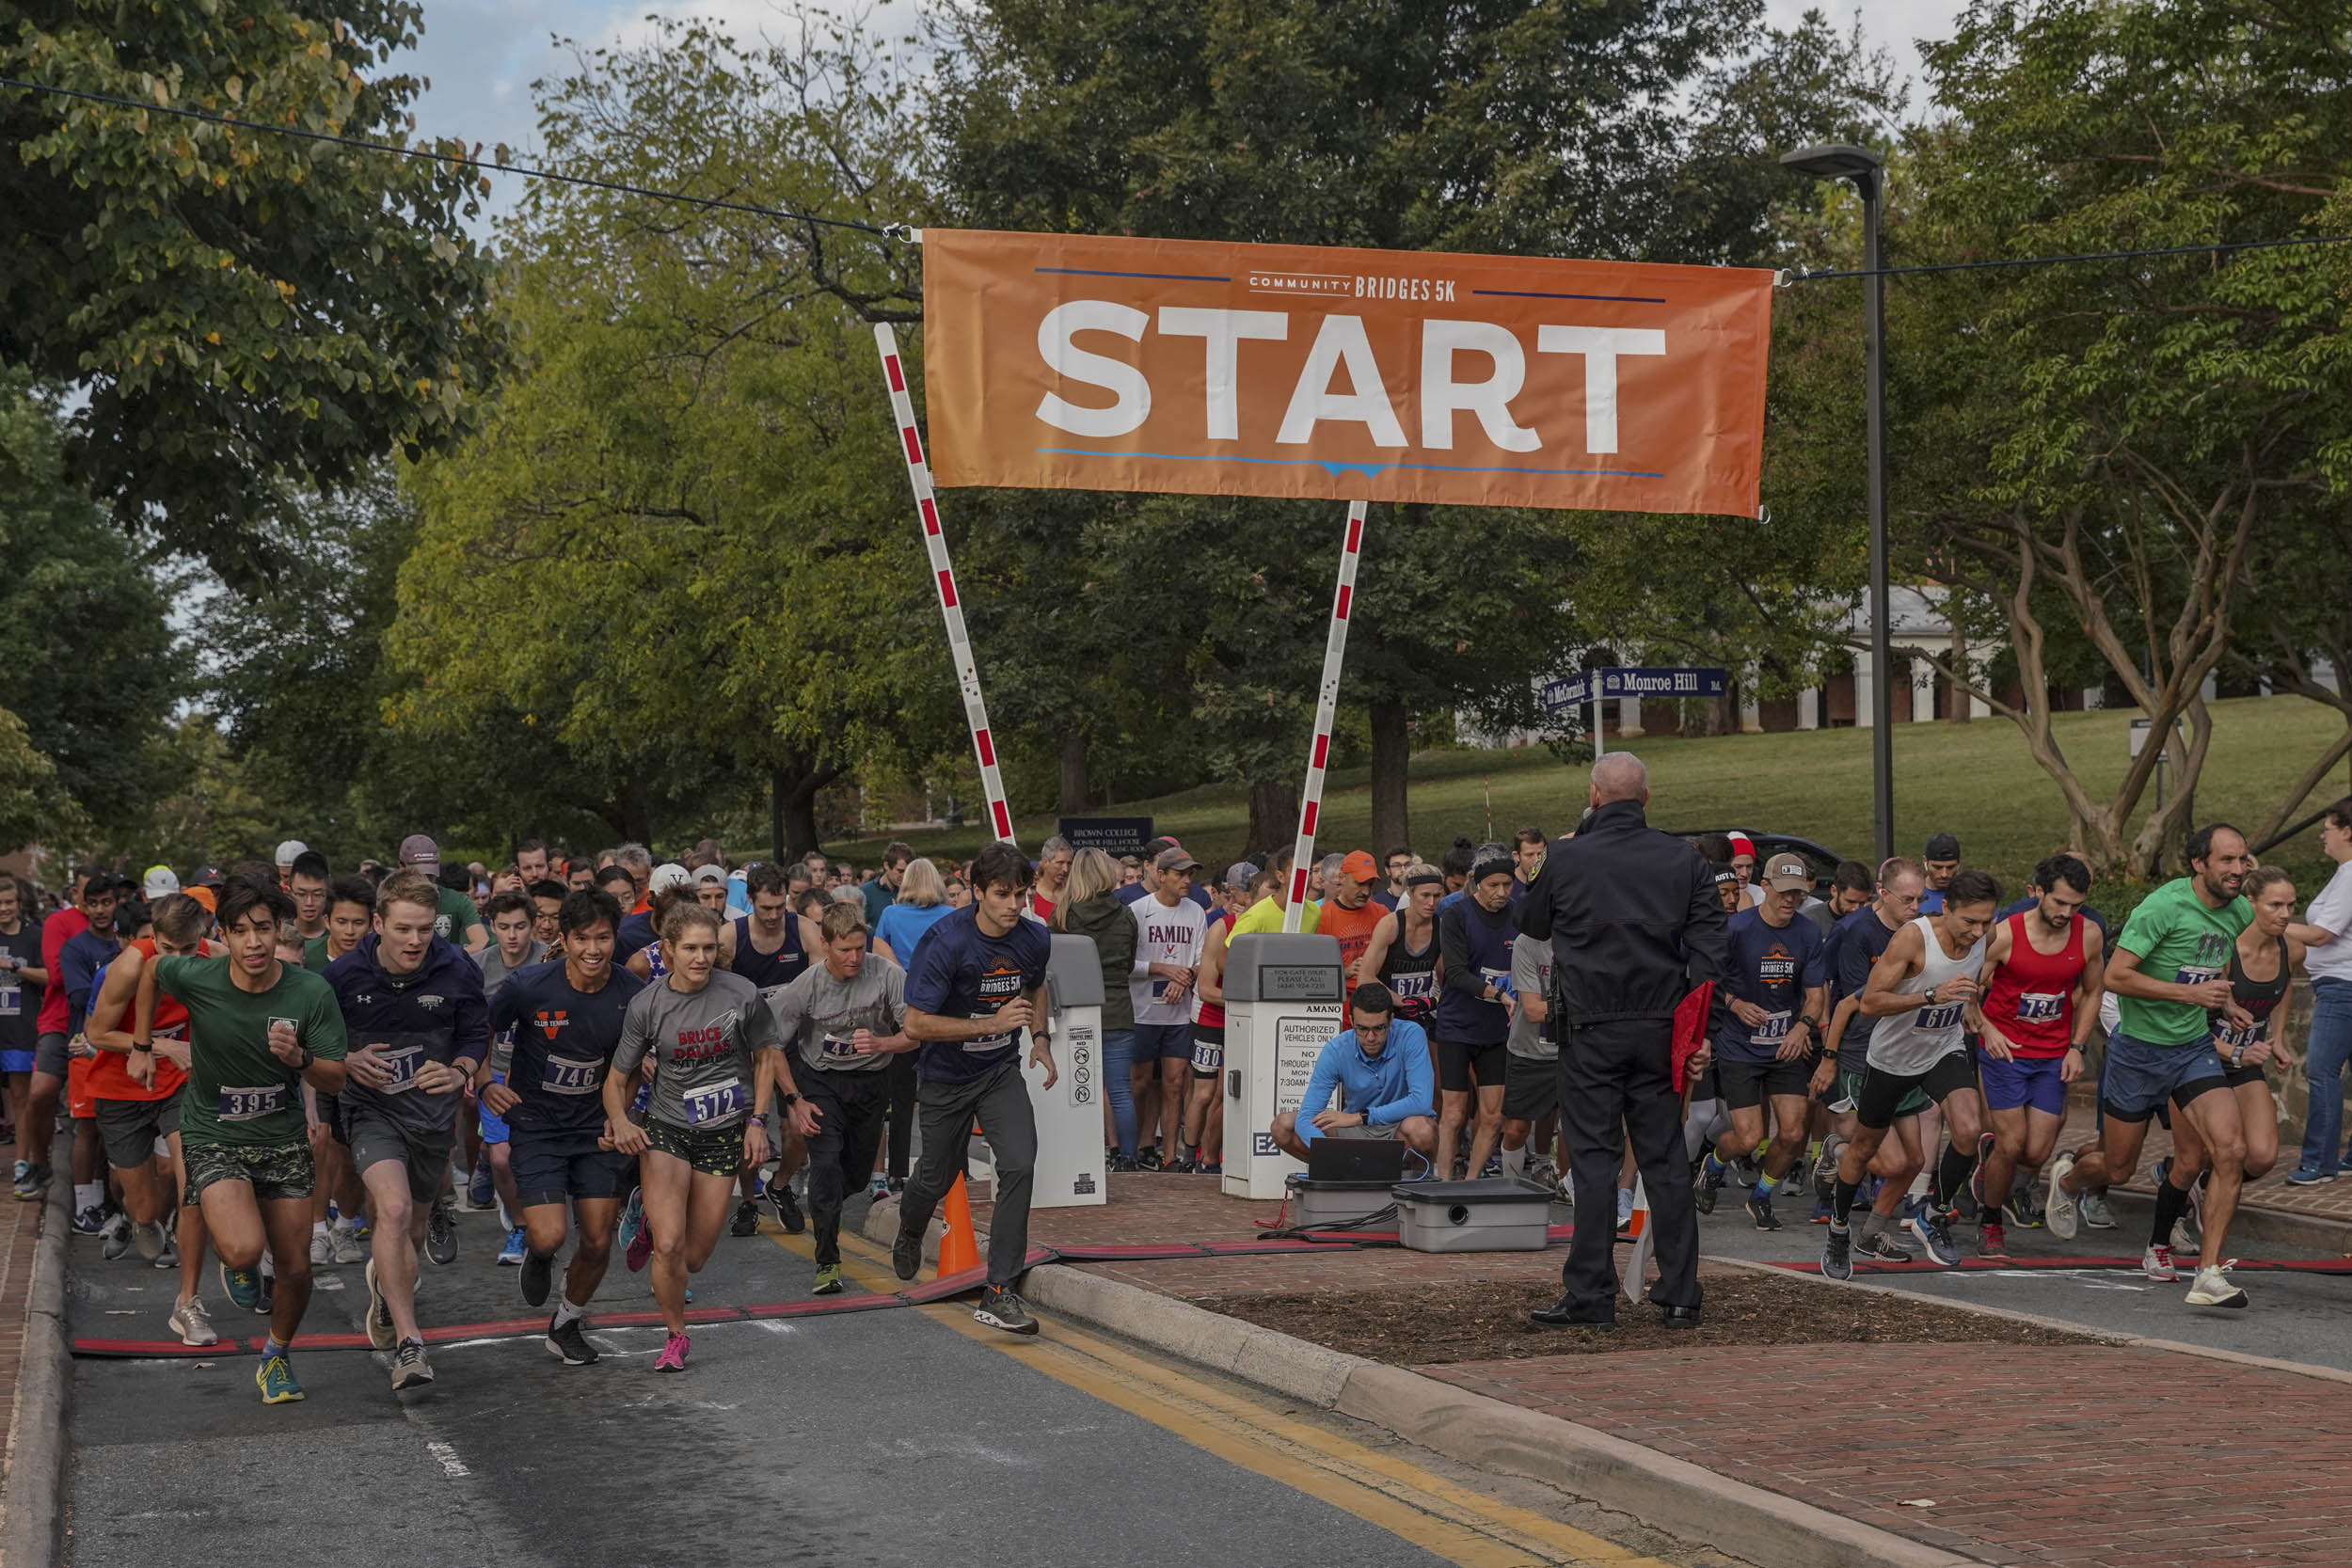 The Community Bridges 5K got off to a fast start early Saturday morning on McCormick Road.